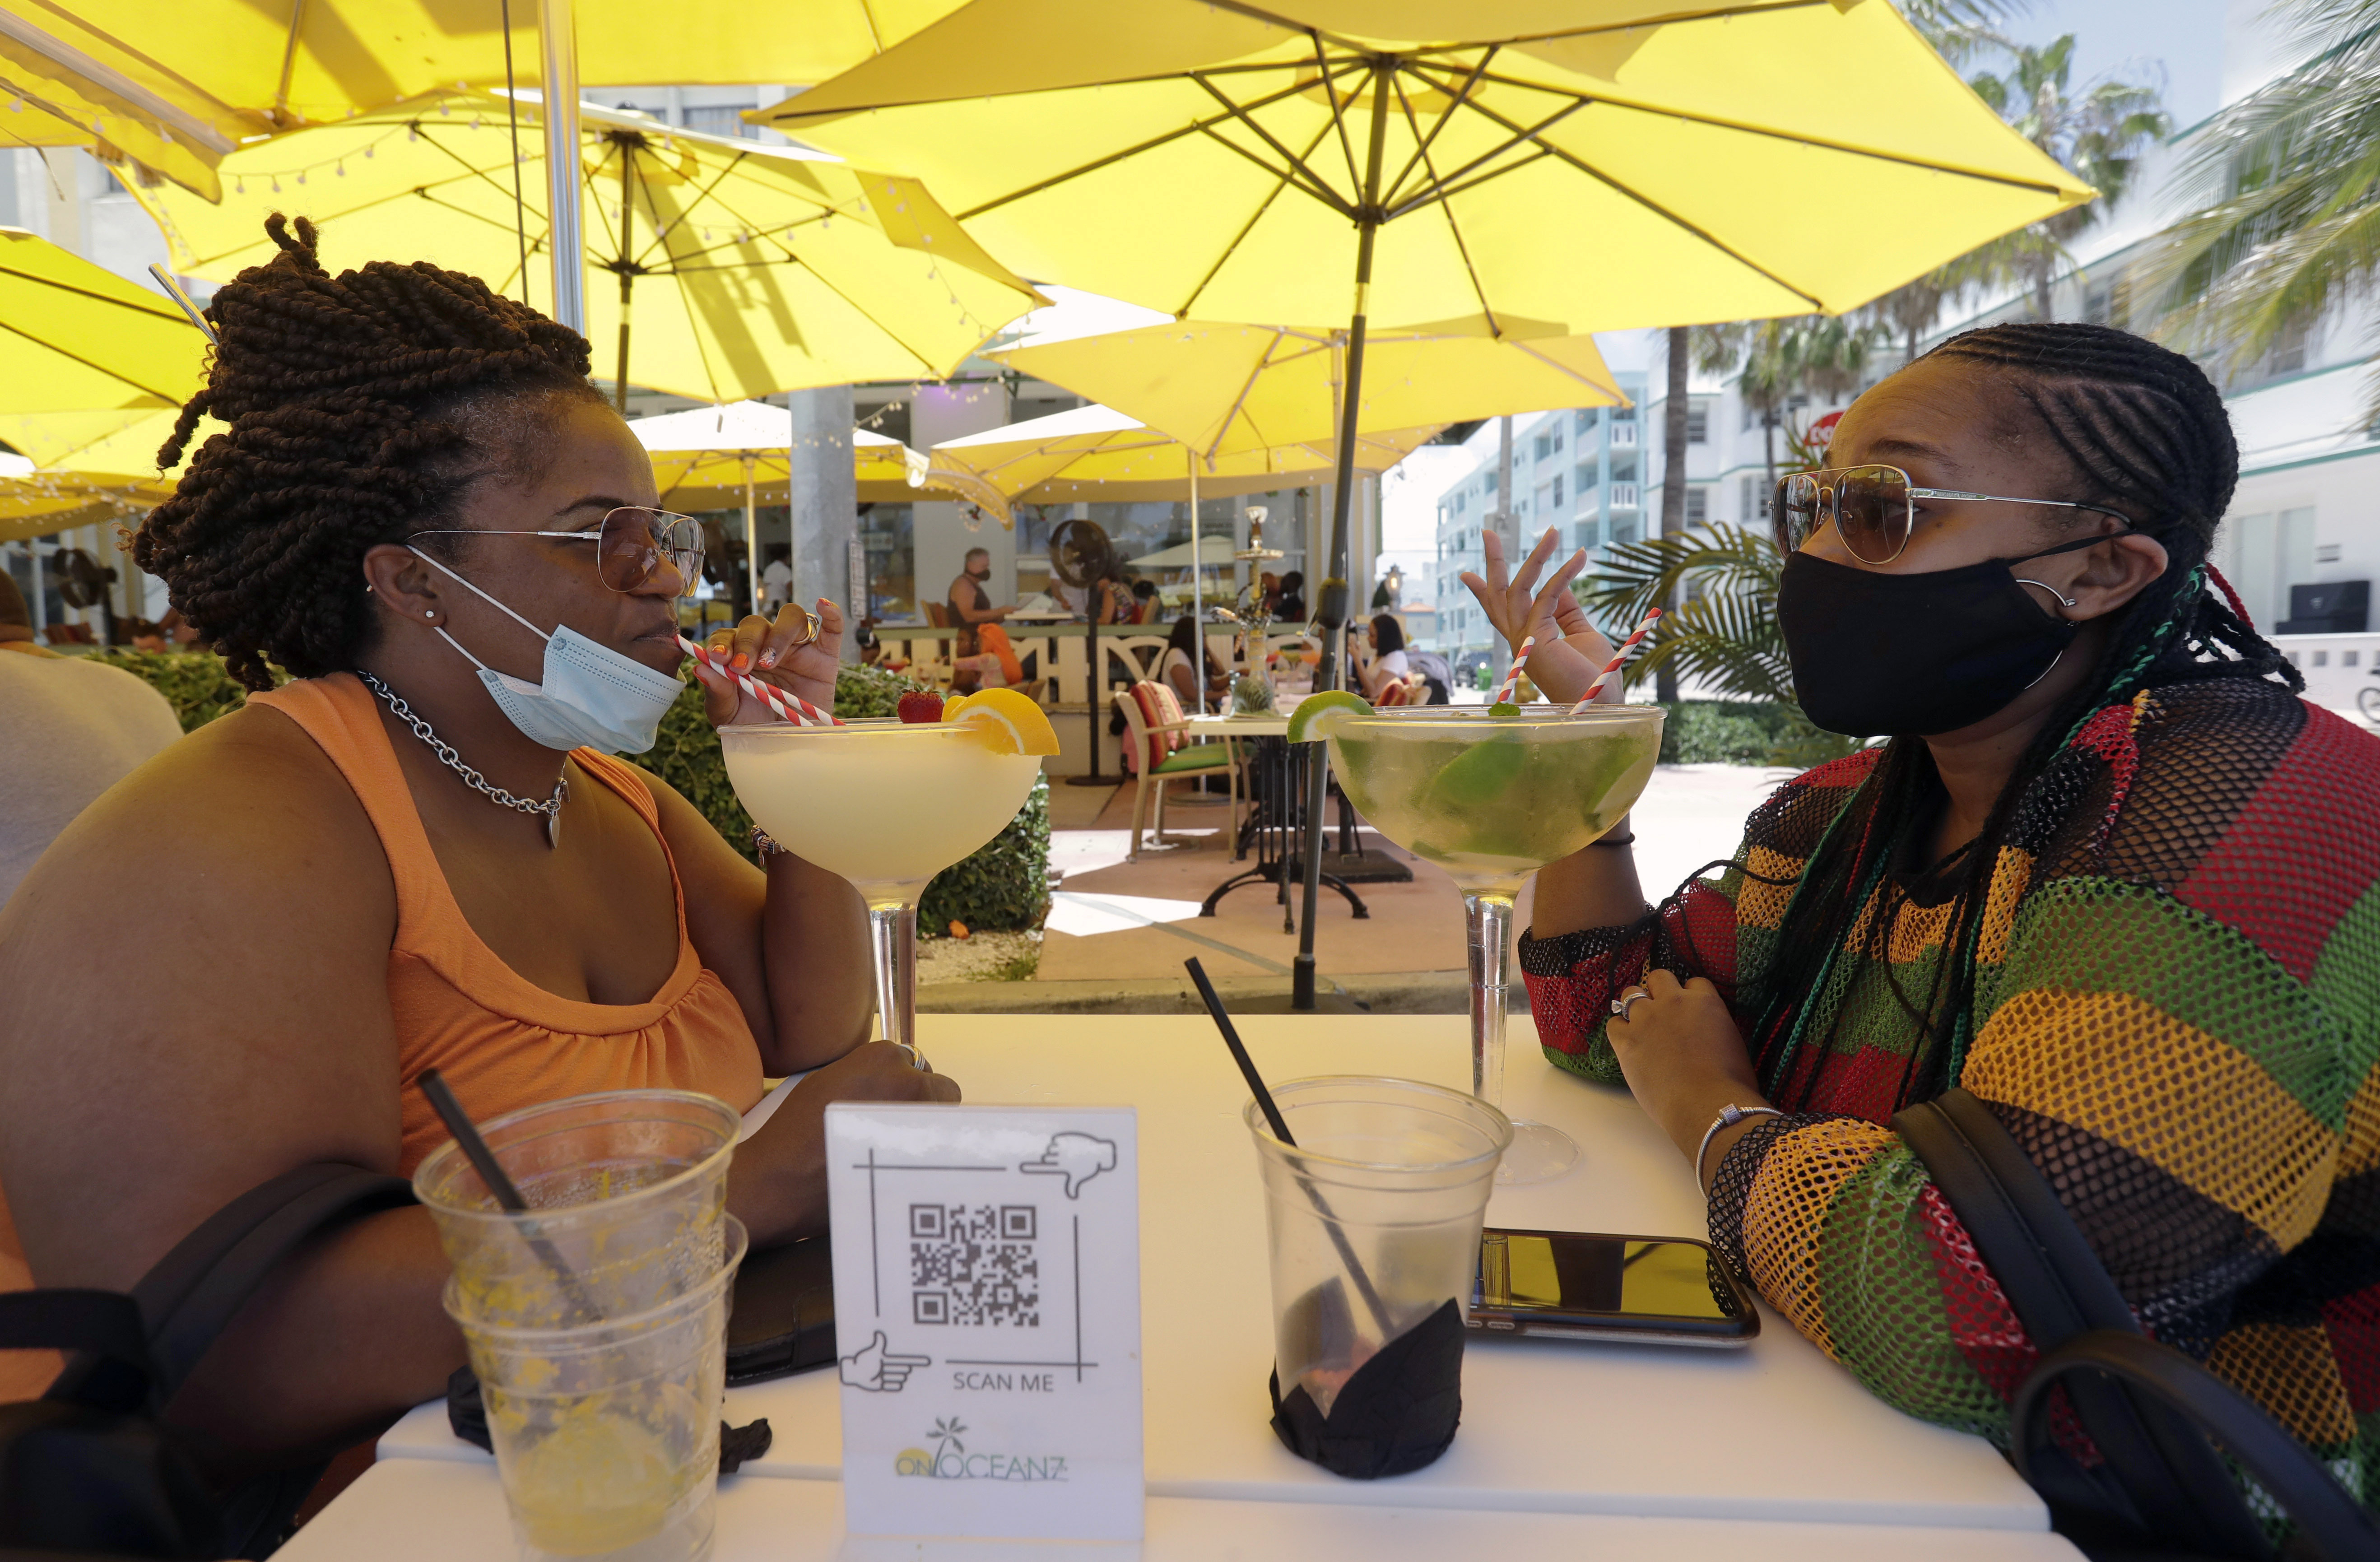 Anita Anderson, left, of Grand Rapids, Mich., and her niece Tawnya Heggins of Houston, chat as they dine outside a restaurant on Miami Beach, Florida's famed South Beach, Friday, June 26, 2020. Florida banned alcohol consumption at its bars Friday as its daily confirmed coronavirus cases neared 9,000, a new record that is almost double the previous mark set just two days ago. (AP Photo/Wilfredo Lee)